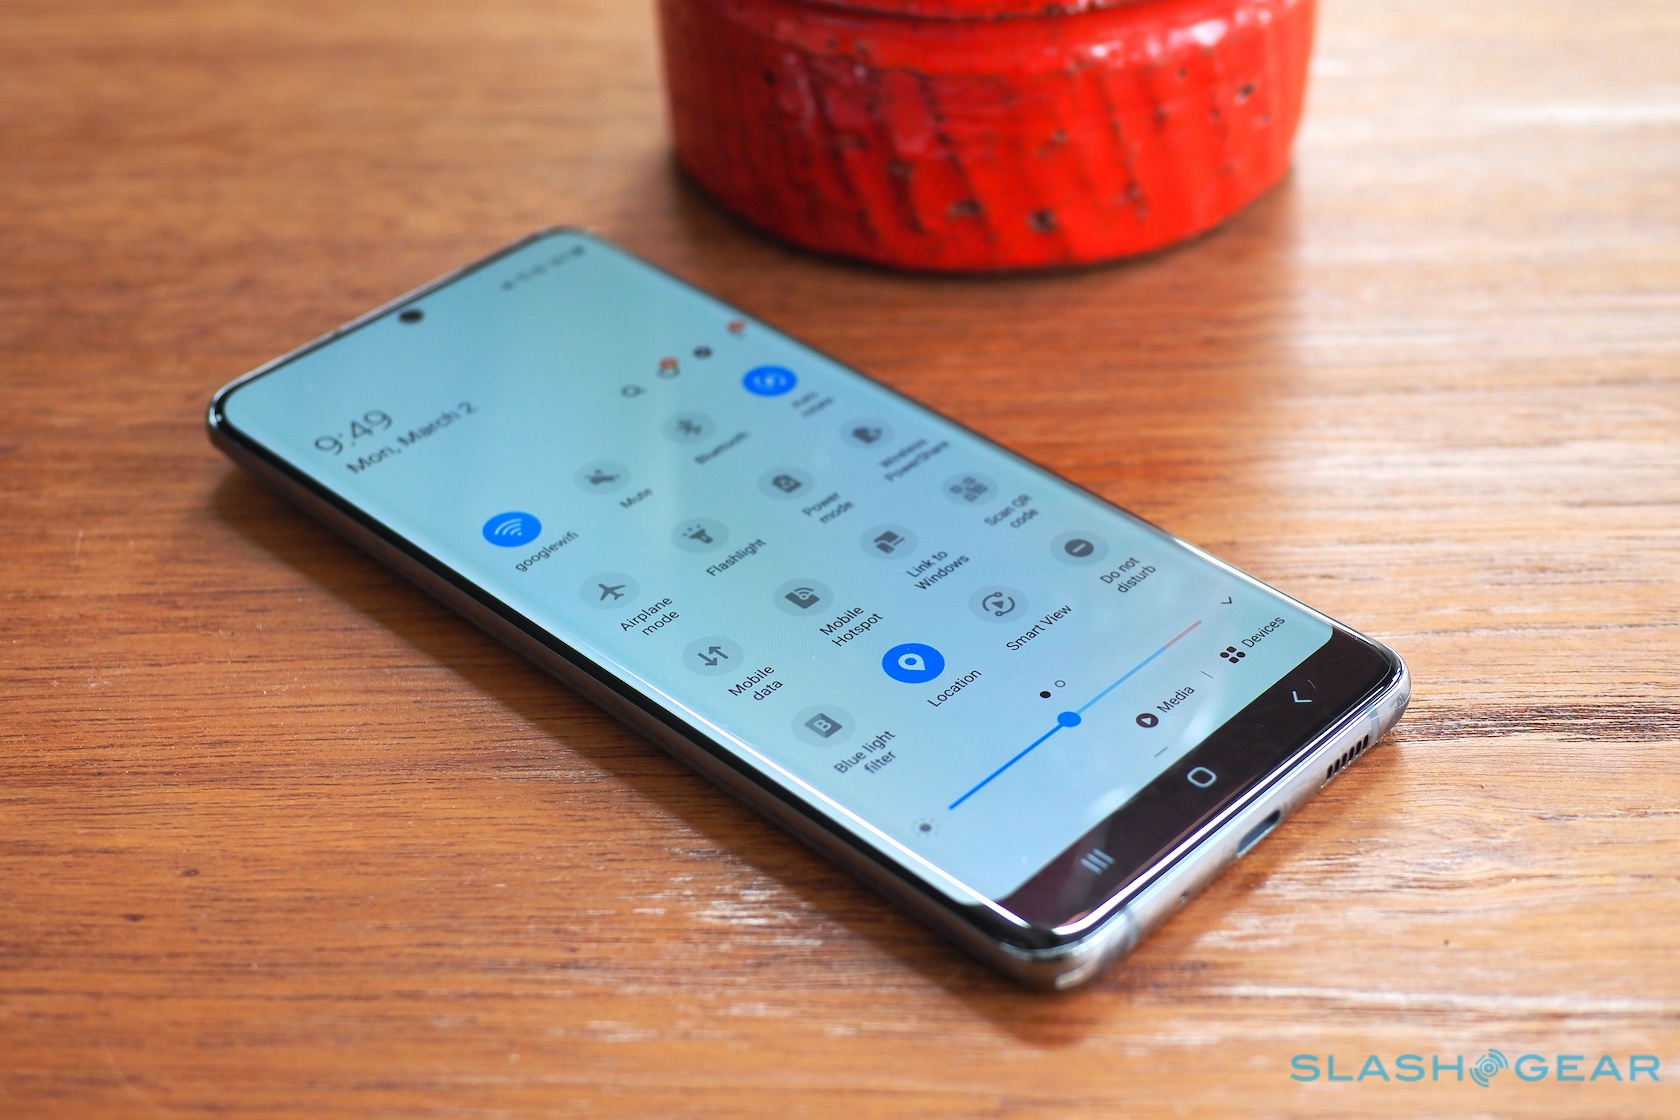 Samsung One UI 2.1 update devices: Note 9, Galaxy S9, more - SlashGear